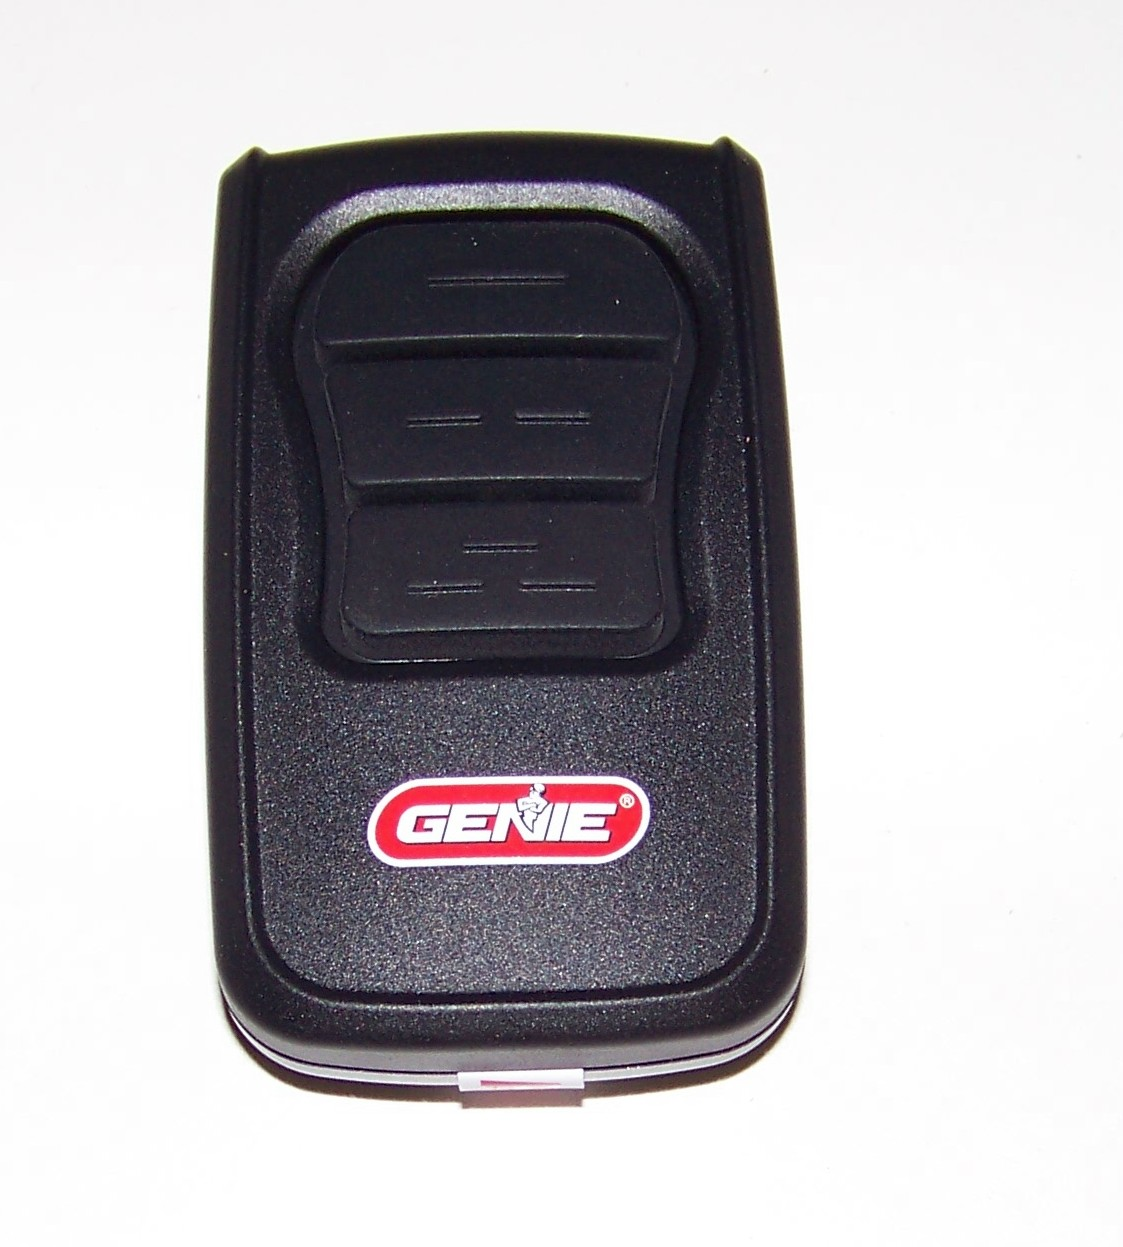 How to program genie garage door opener remotes rubansaba